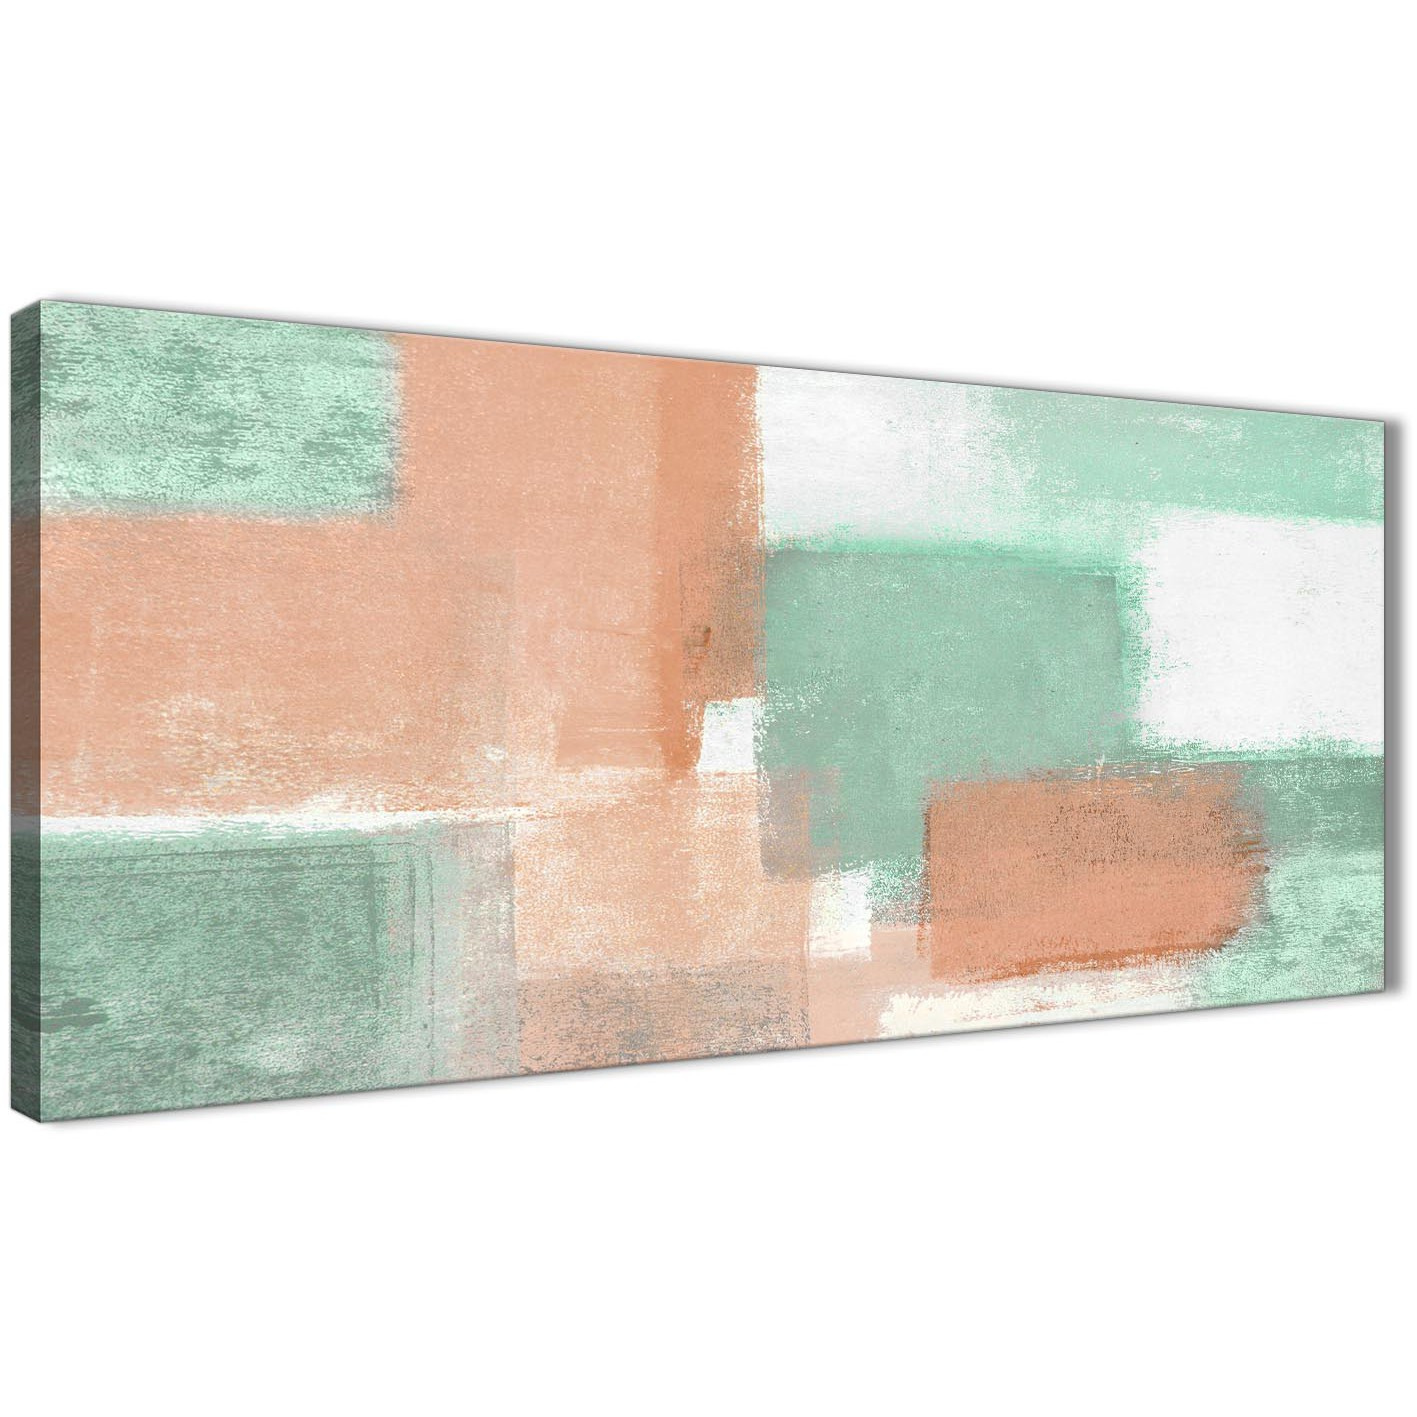 Panoramic Peach Mint Green Bedroom Canvas Wall Art Accessories   Abstract  1375   120cm Print Display Gallery Item 1 ...